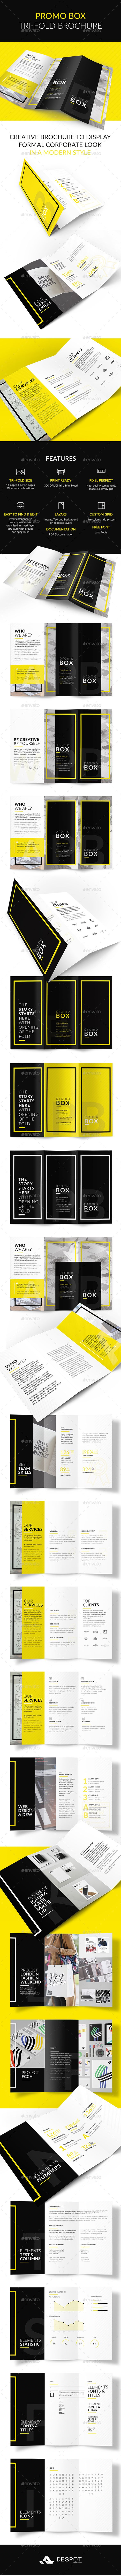 Promo BOX Tri-Fold Brochure  PSD Template • Download ➝ https://graphicriver.net/item/promo-box-trifold-brochure/17041865?ref=pxcr